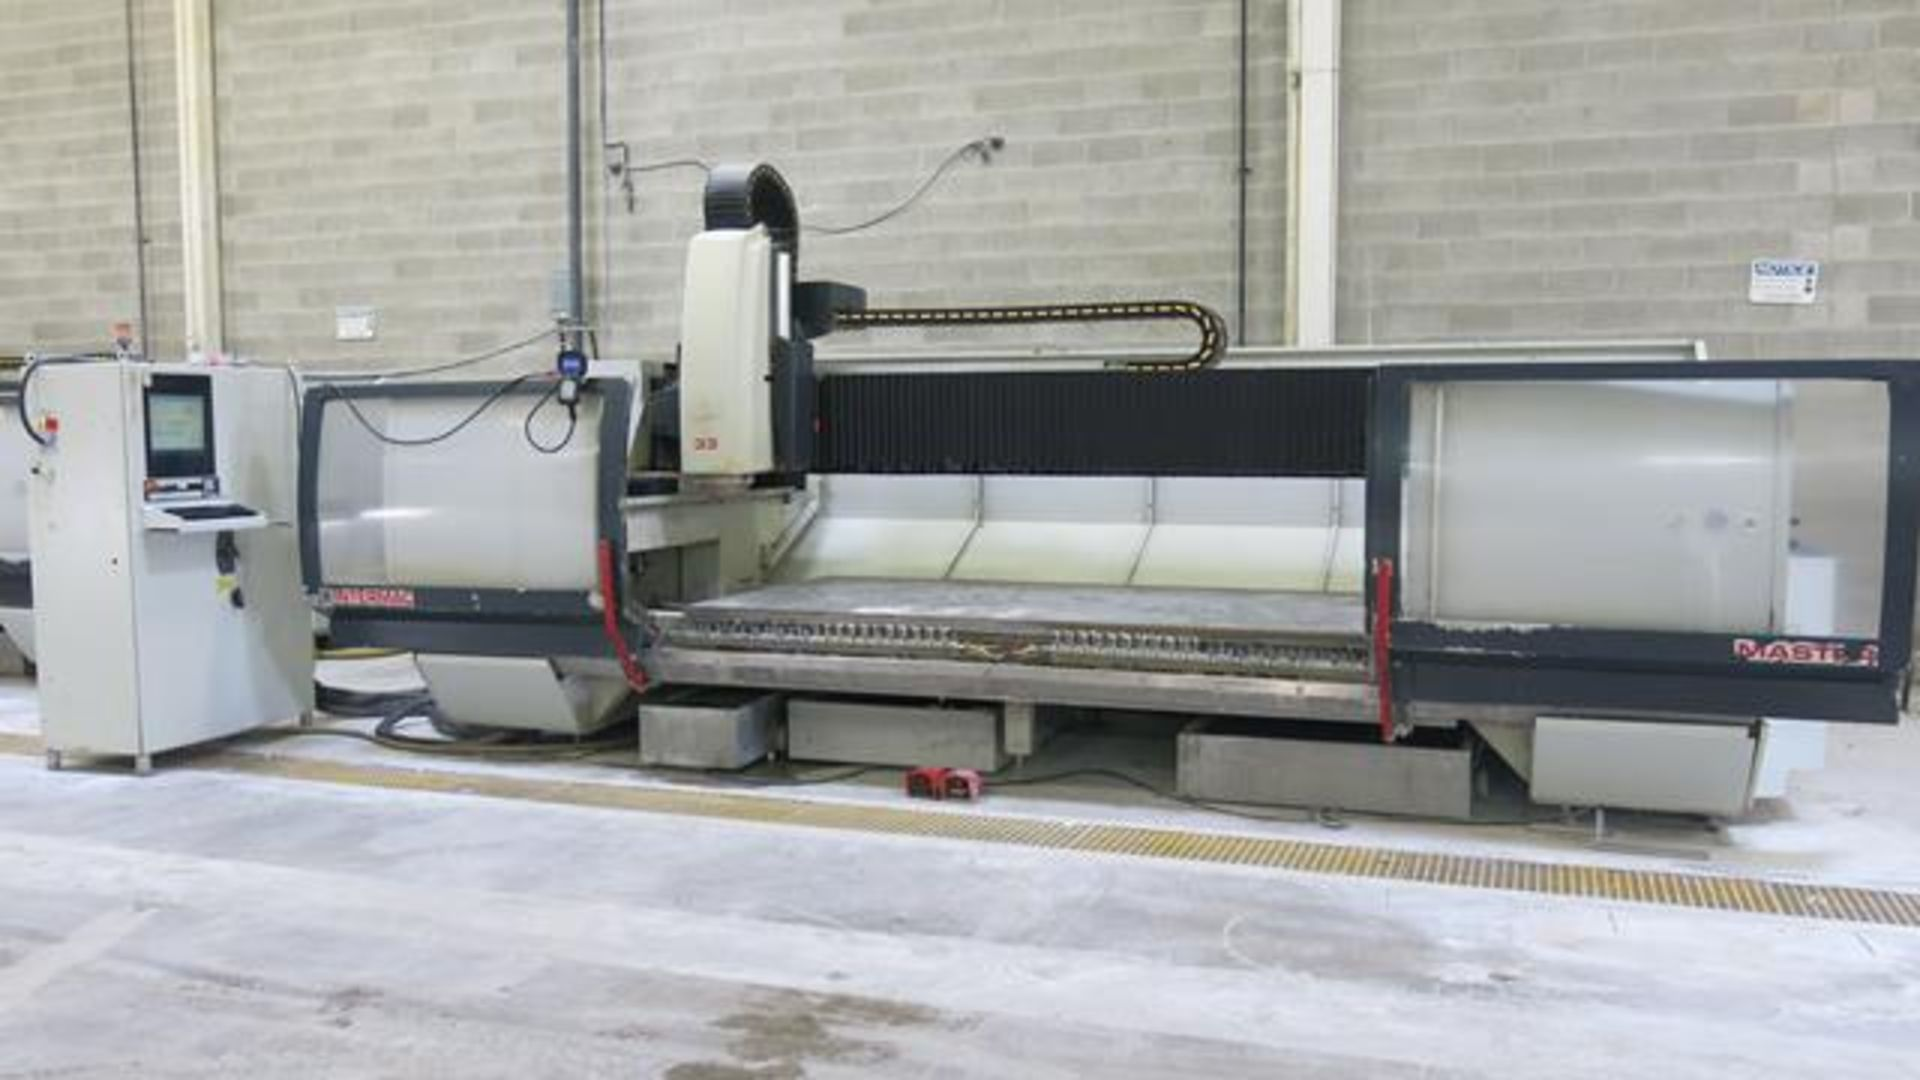 Lot 907 - INTERMAC, MASTER 33 M, CNC STONE AND GLASS MACHINING CENTRE, 13,168 HOURS, S/N 32461, 2008